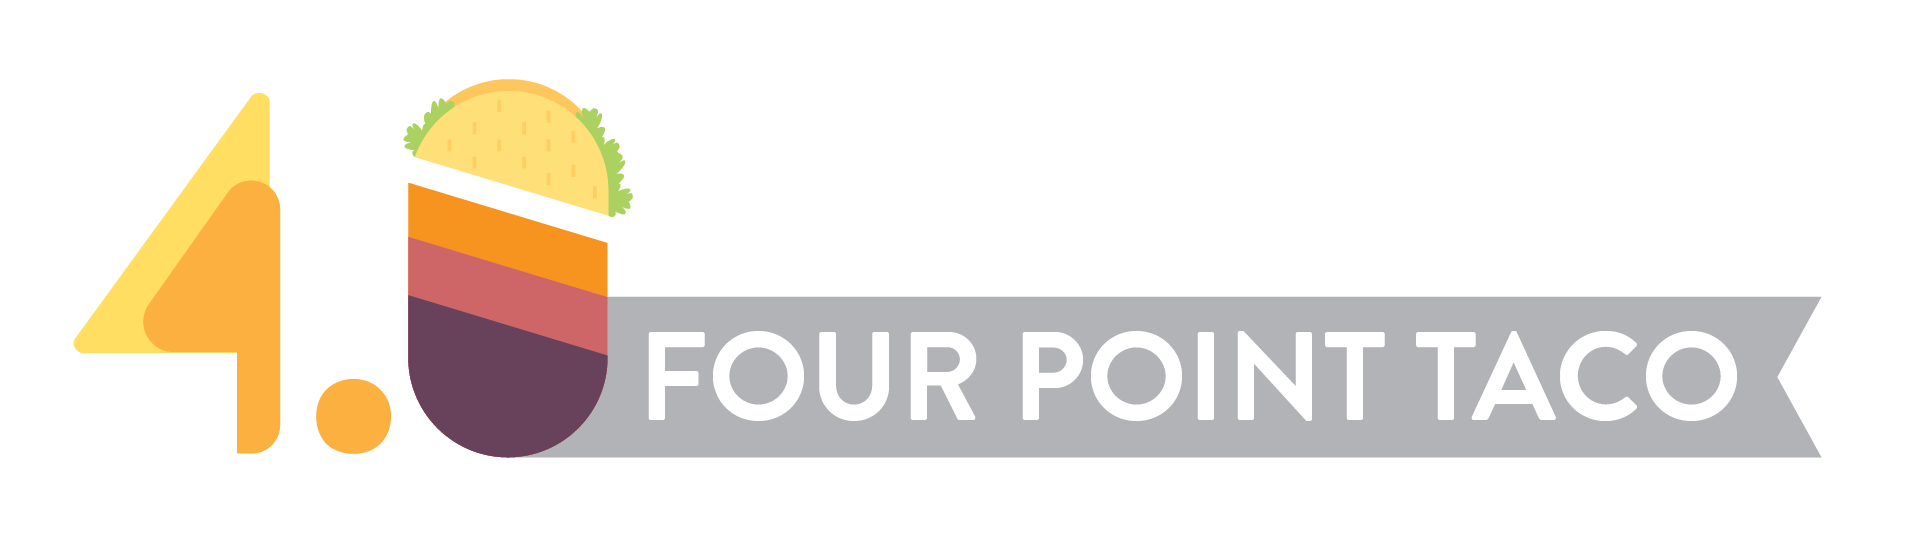 4PointTaco-logo-05.png